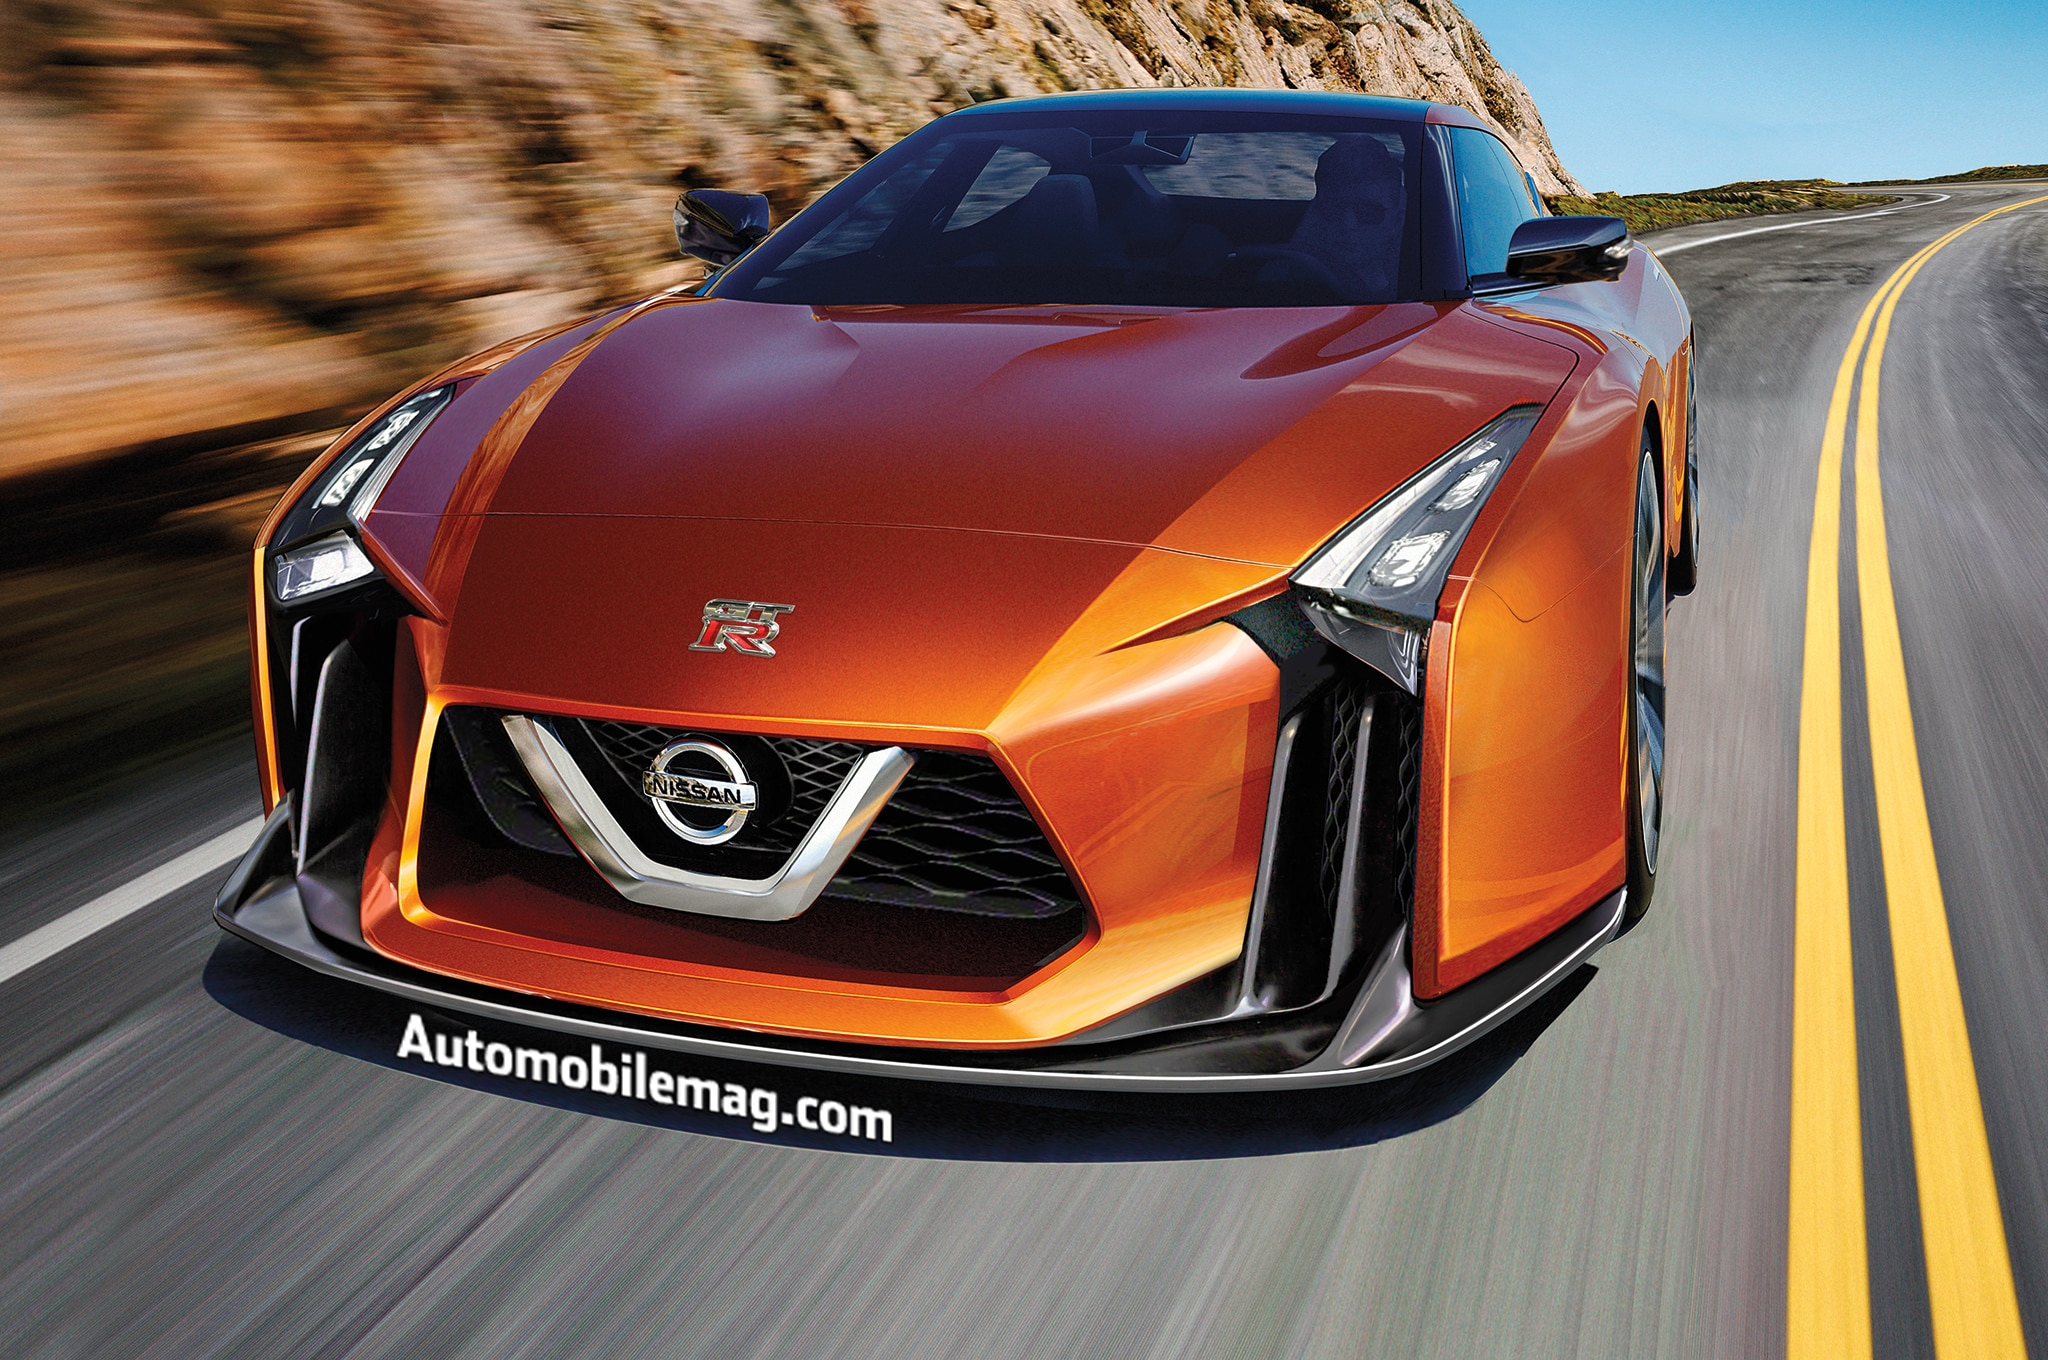 nissan gt r rendering front - Sports Cars Of The Future